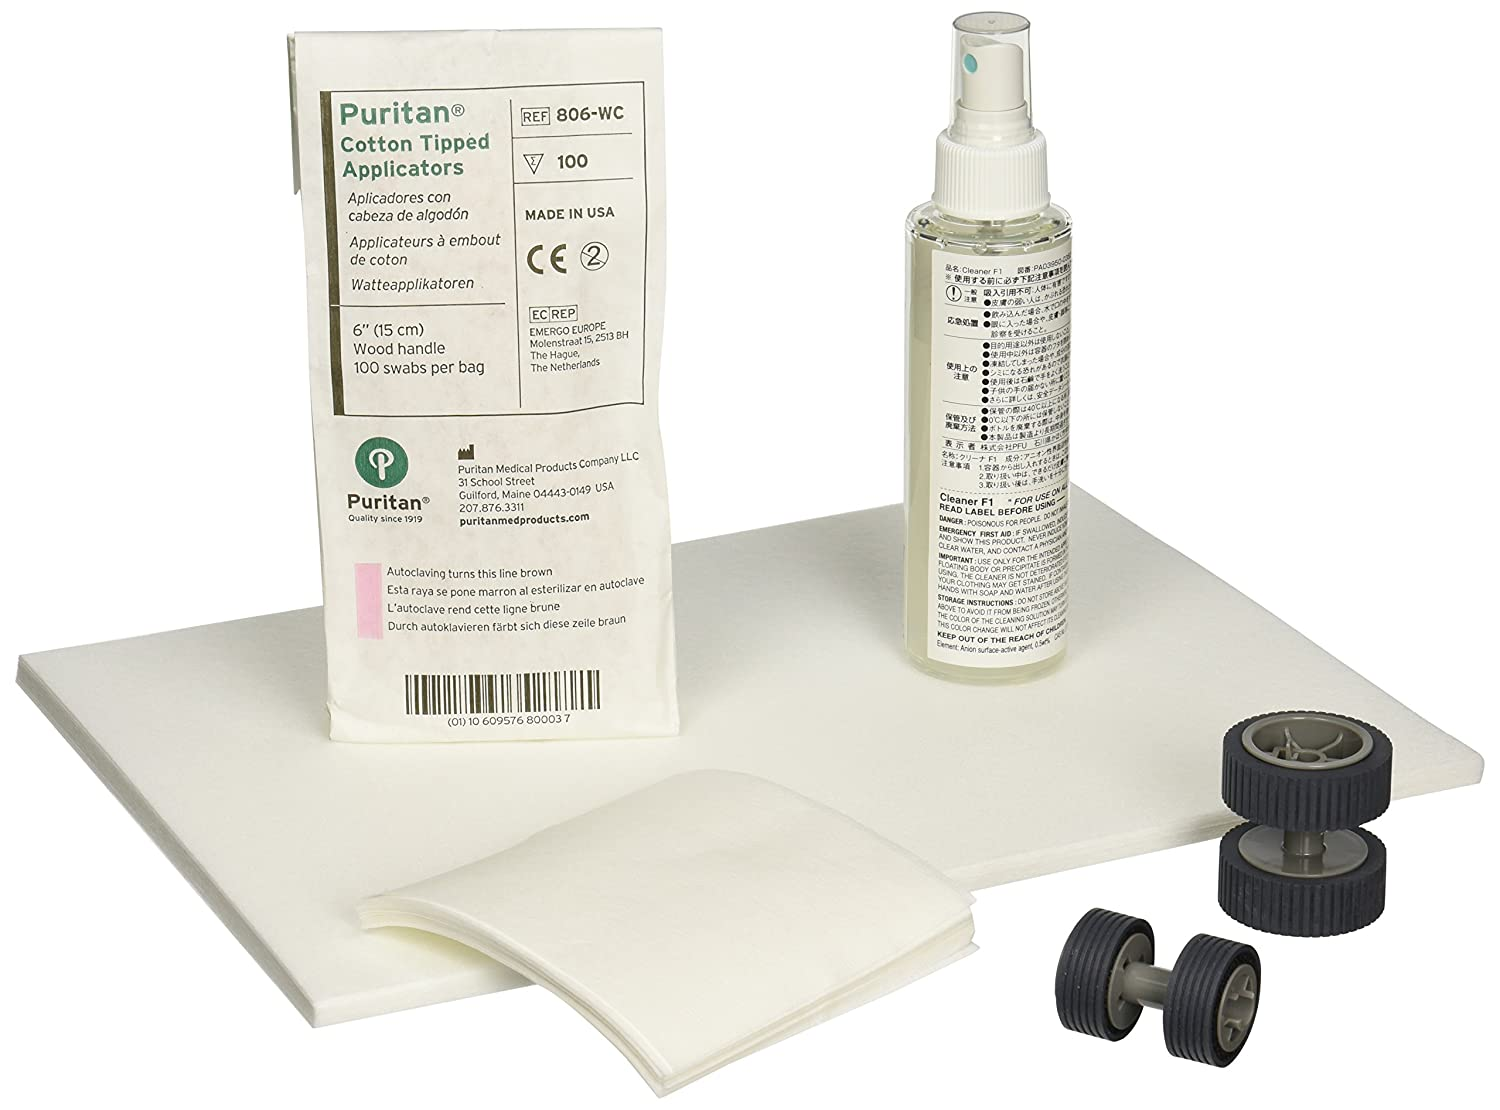 Scanaid Cleaning and Consumable Kit for FI-6X40 Series FUJITSU CG01000-524801